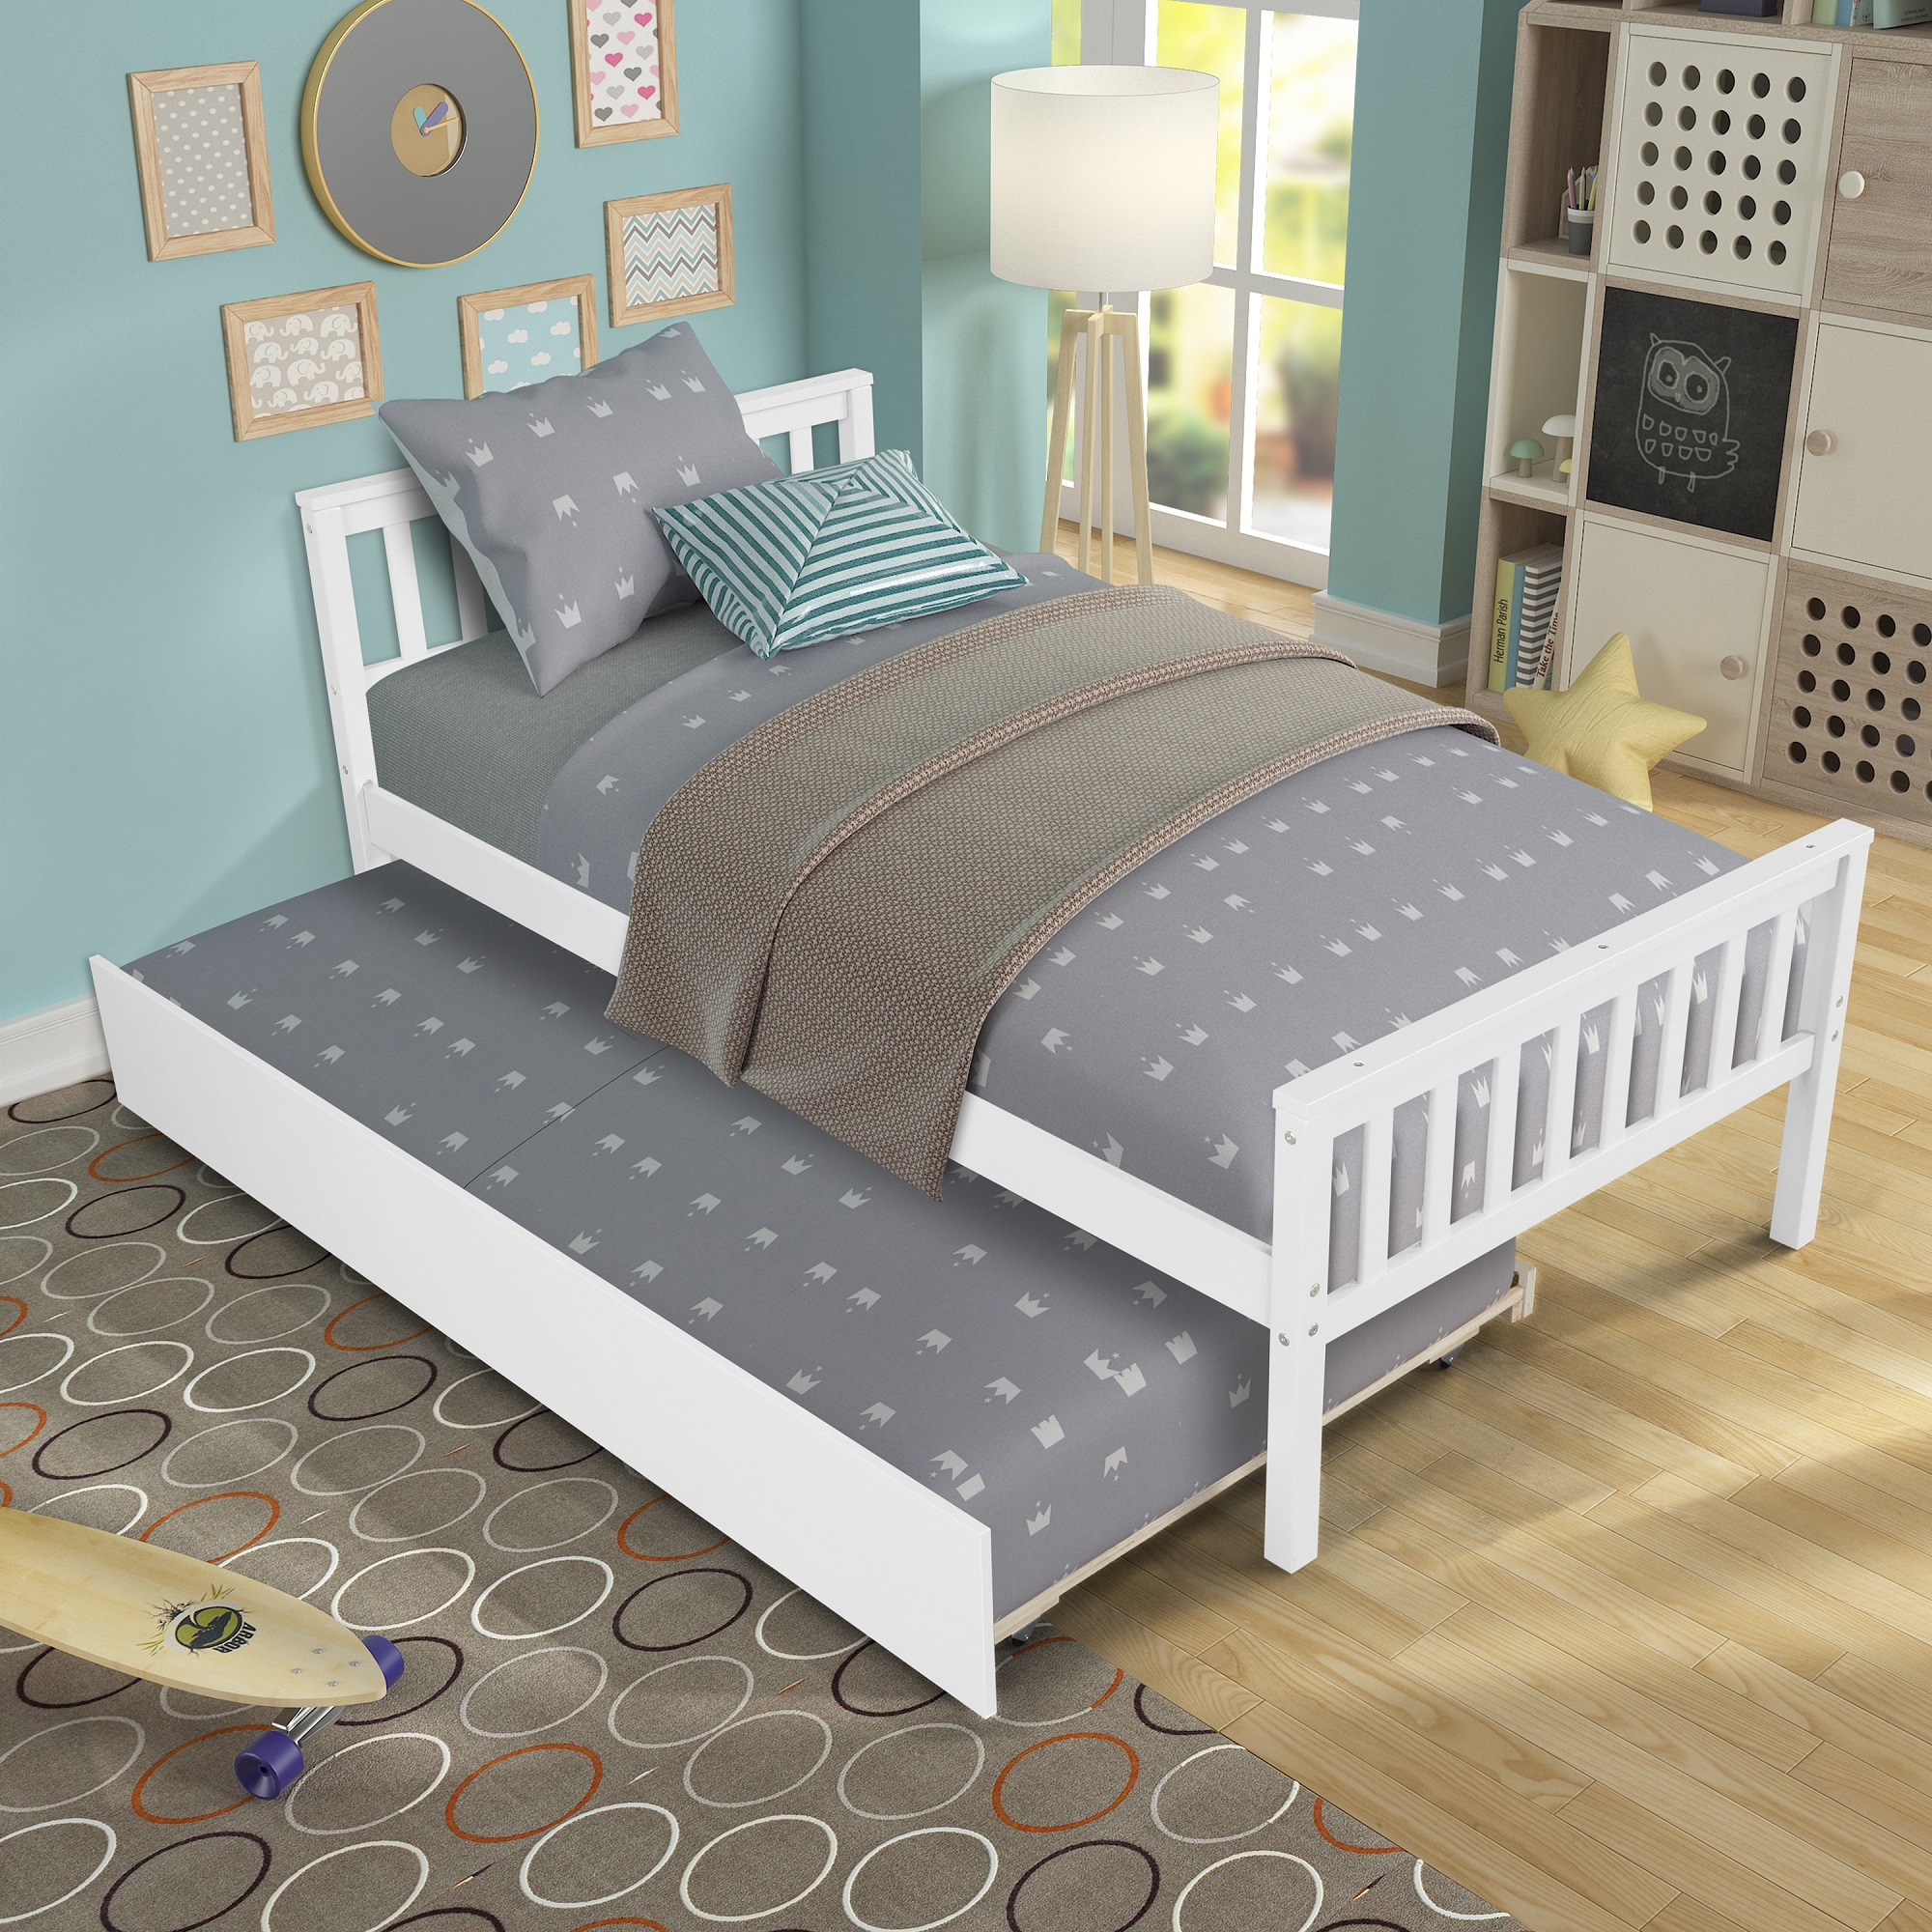 UHOMEPRO Twin Bed Frame with Headboard, Solid Wood Bed for Teens